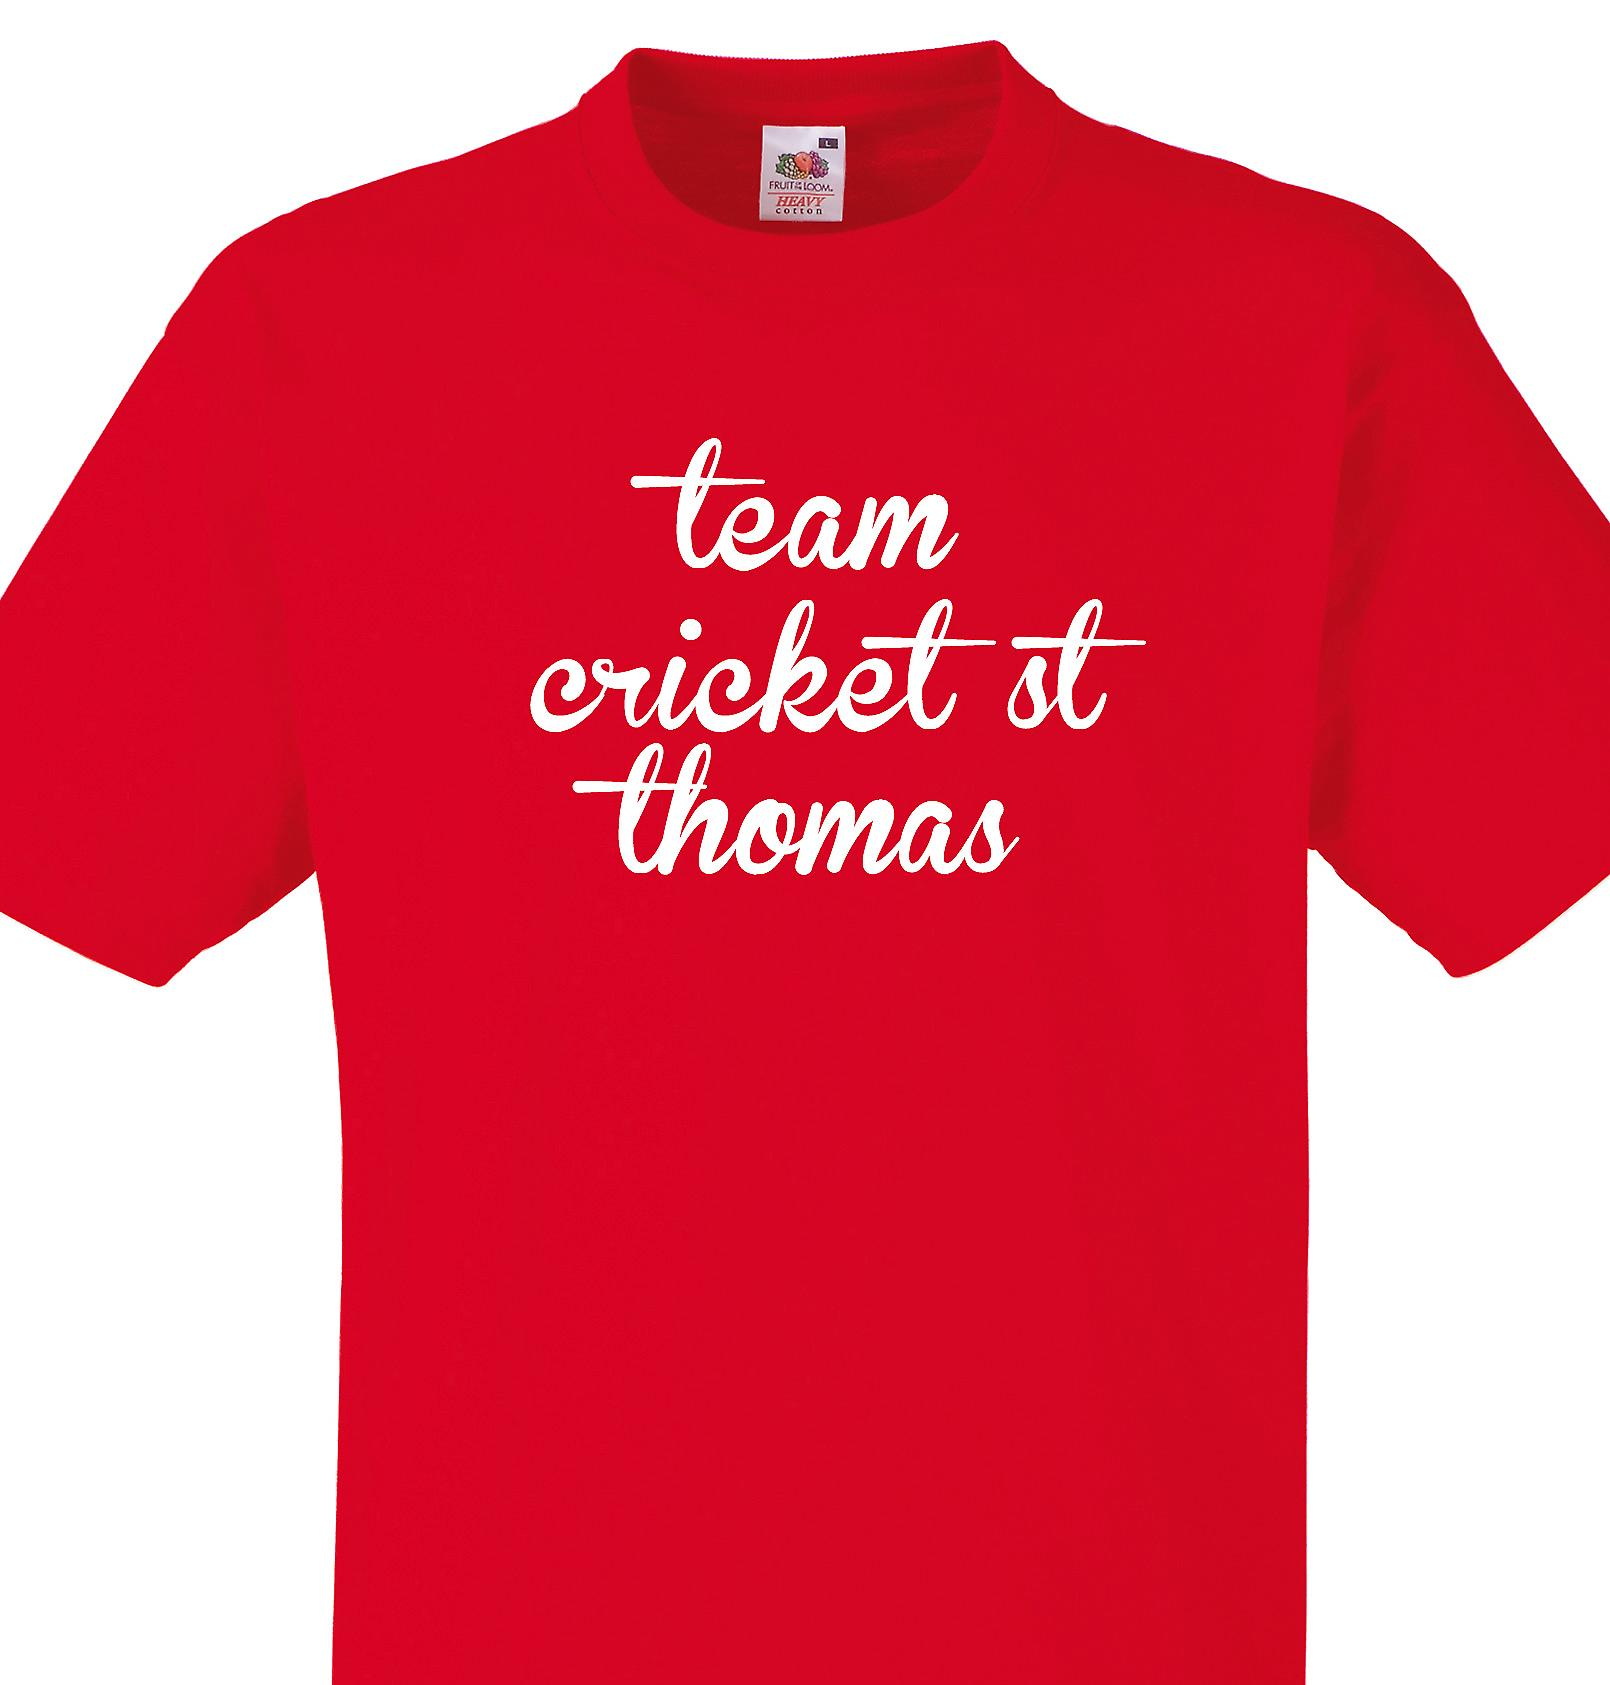 Team Cricket st thomas Red T shirt